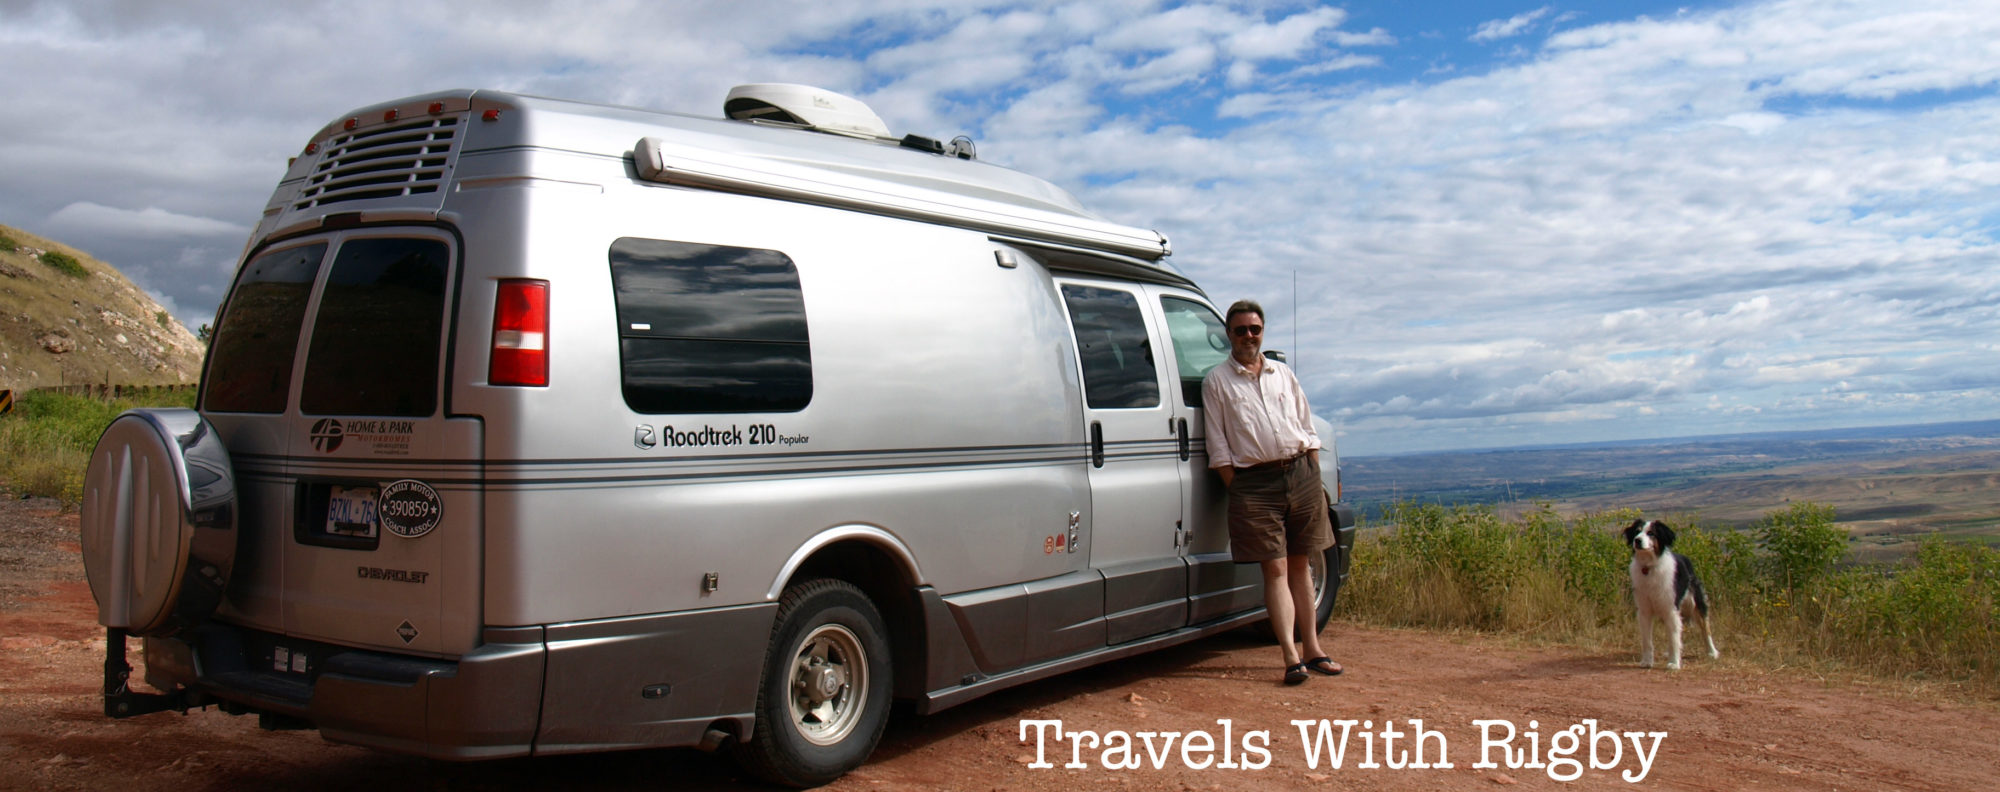 how to buy a used class b rv travelswithrigby com rh travelswithrigby com Used Class B RVs New Class B Motorhomes